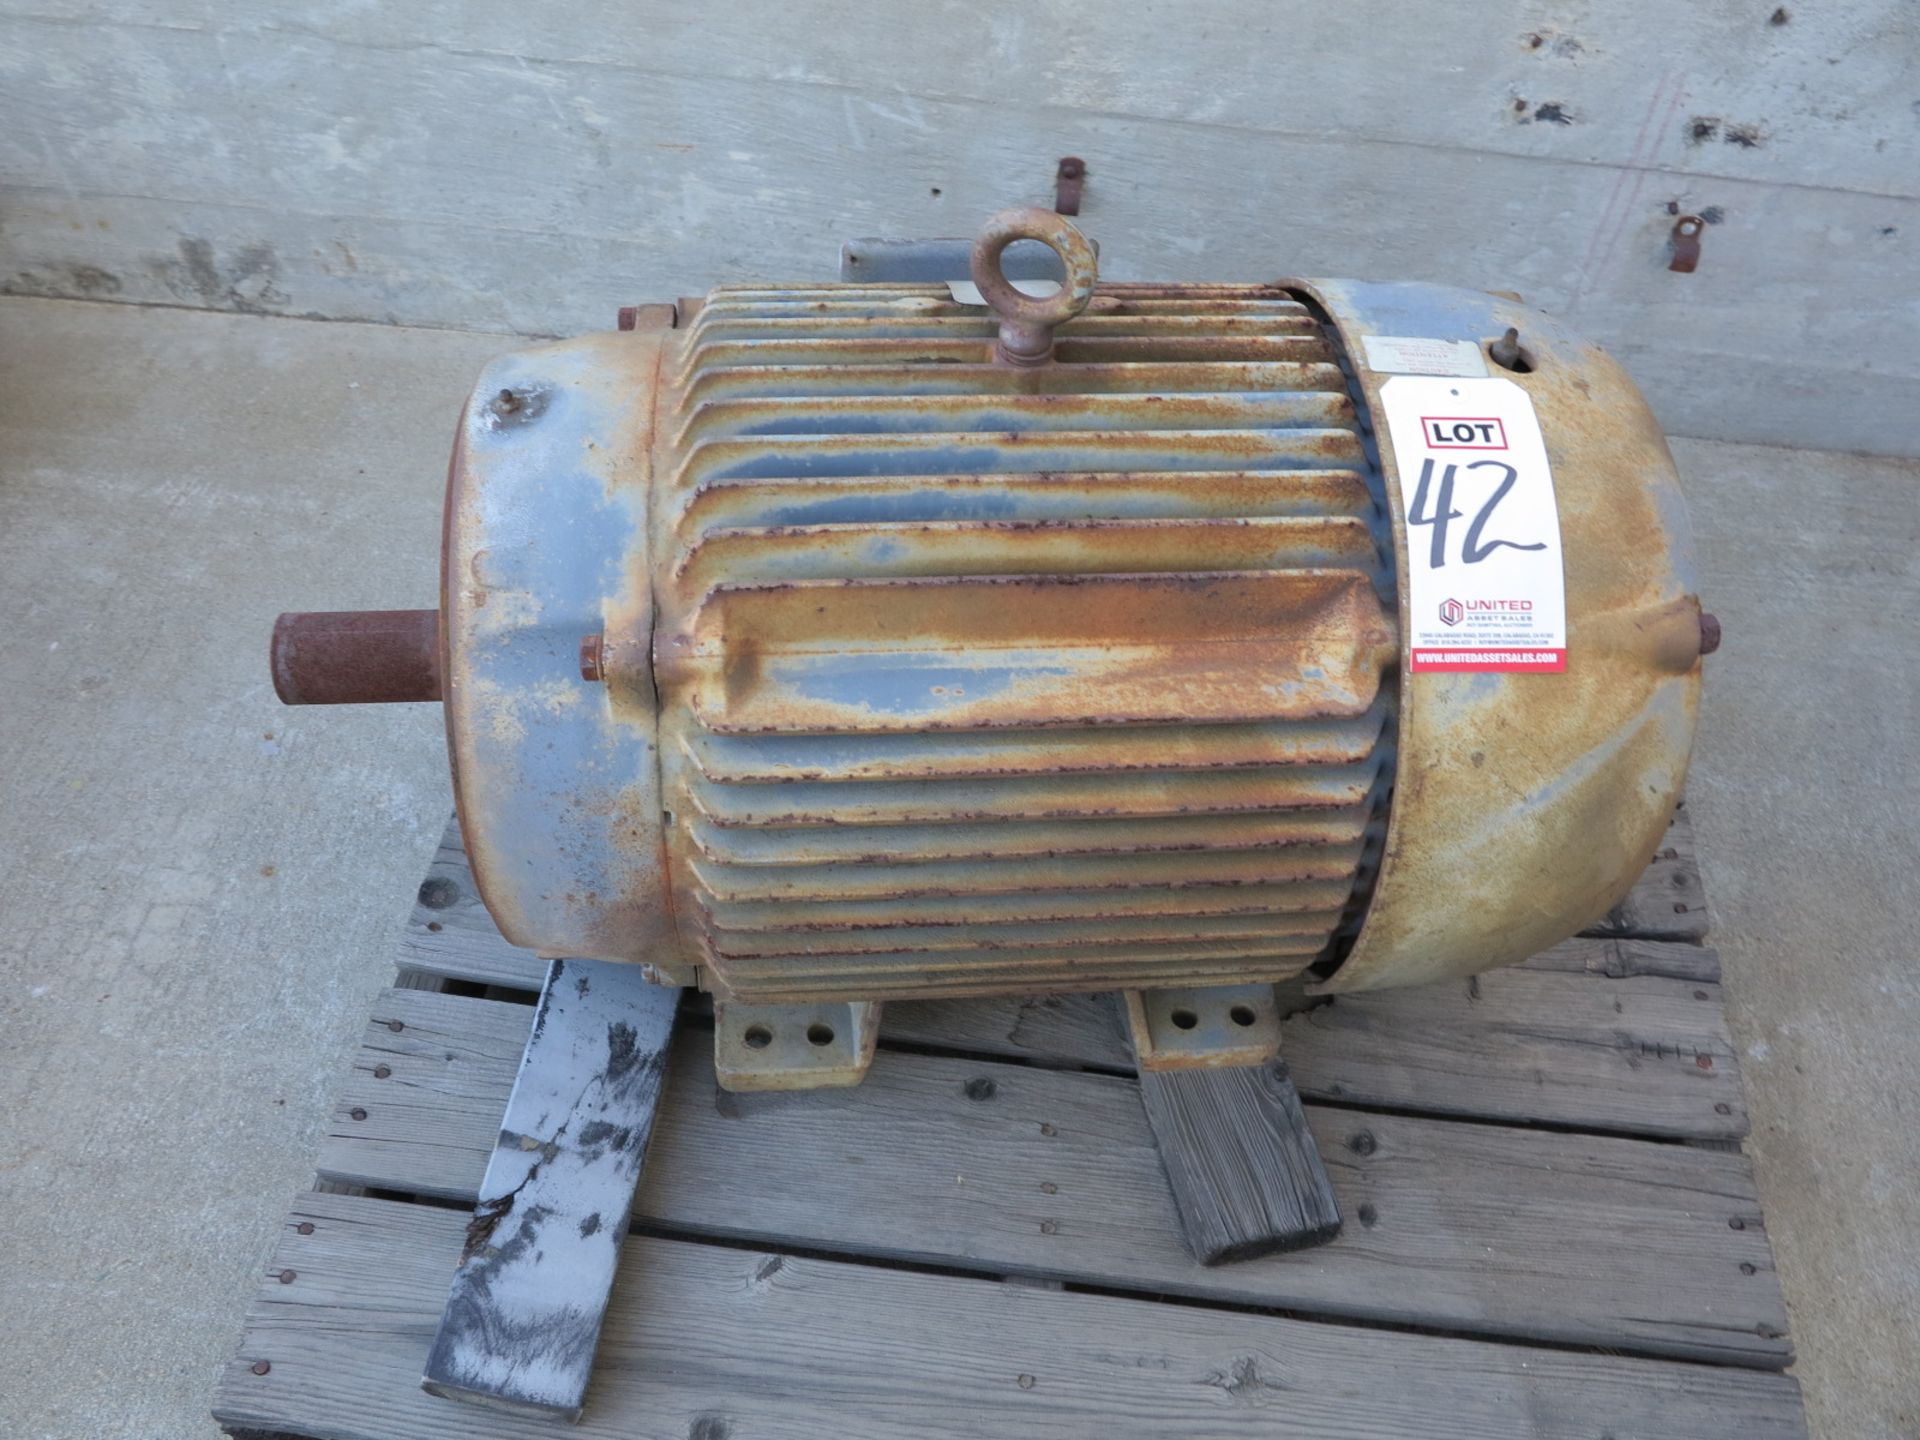 Lot 42 - BALDOR 50 HP MOTOR, MODEL CM4115T, S/N 12C52W274